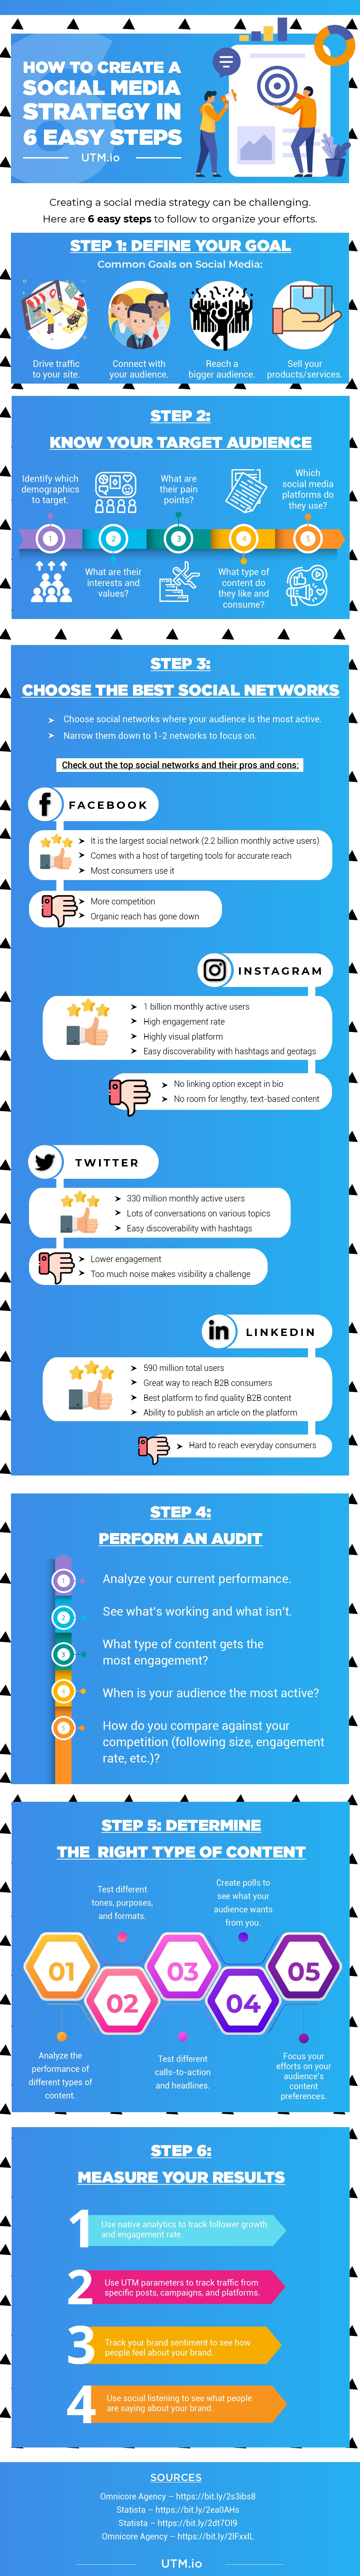 Easy Steps to Create a Social Media Strategy [Infographic]